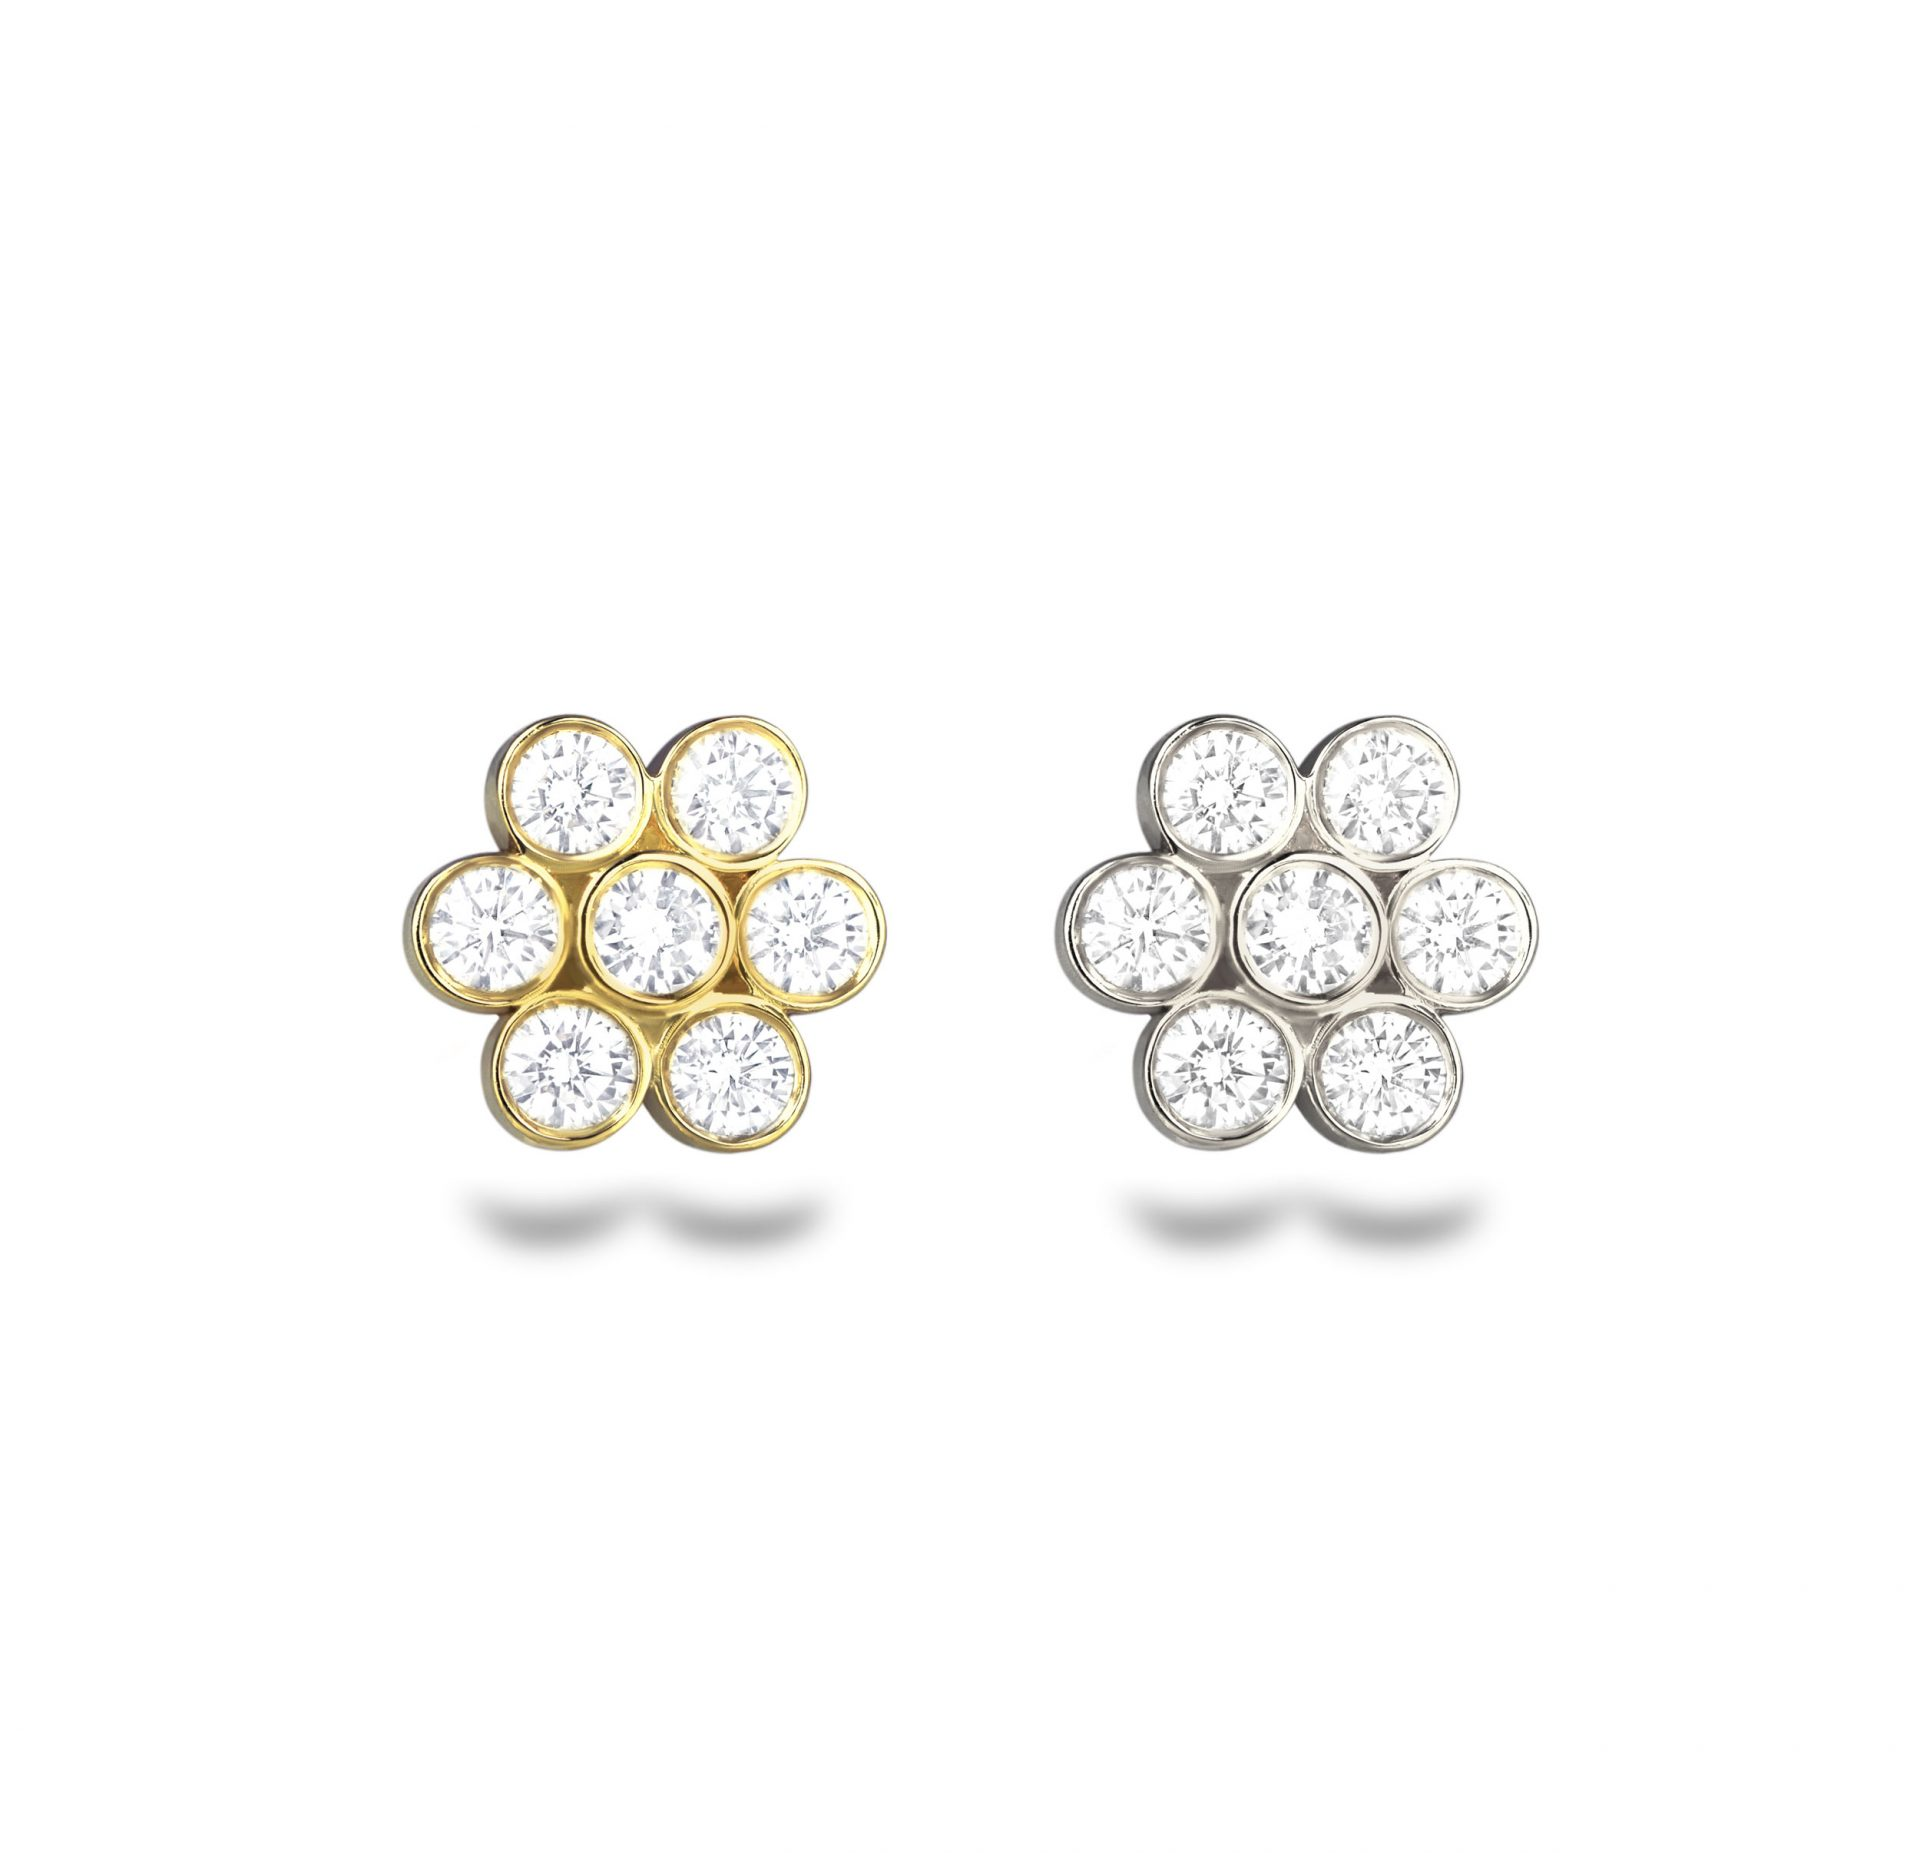 Seven-high-quality-natural-white-diamonds-flower-cartilage-helix-earring-18k-yellow-white-gold